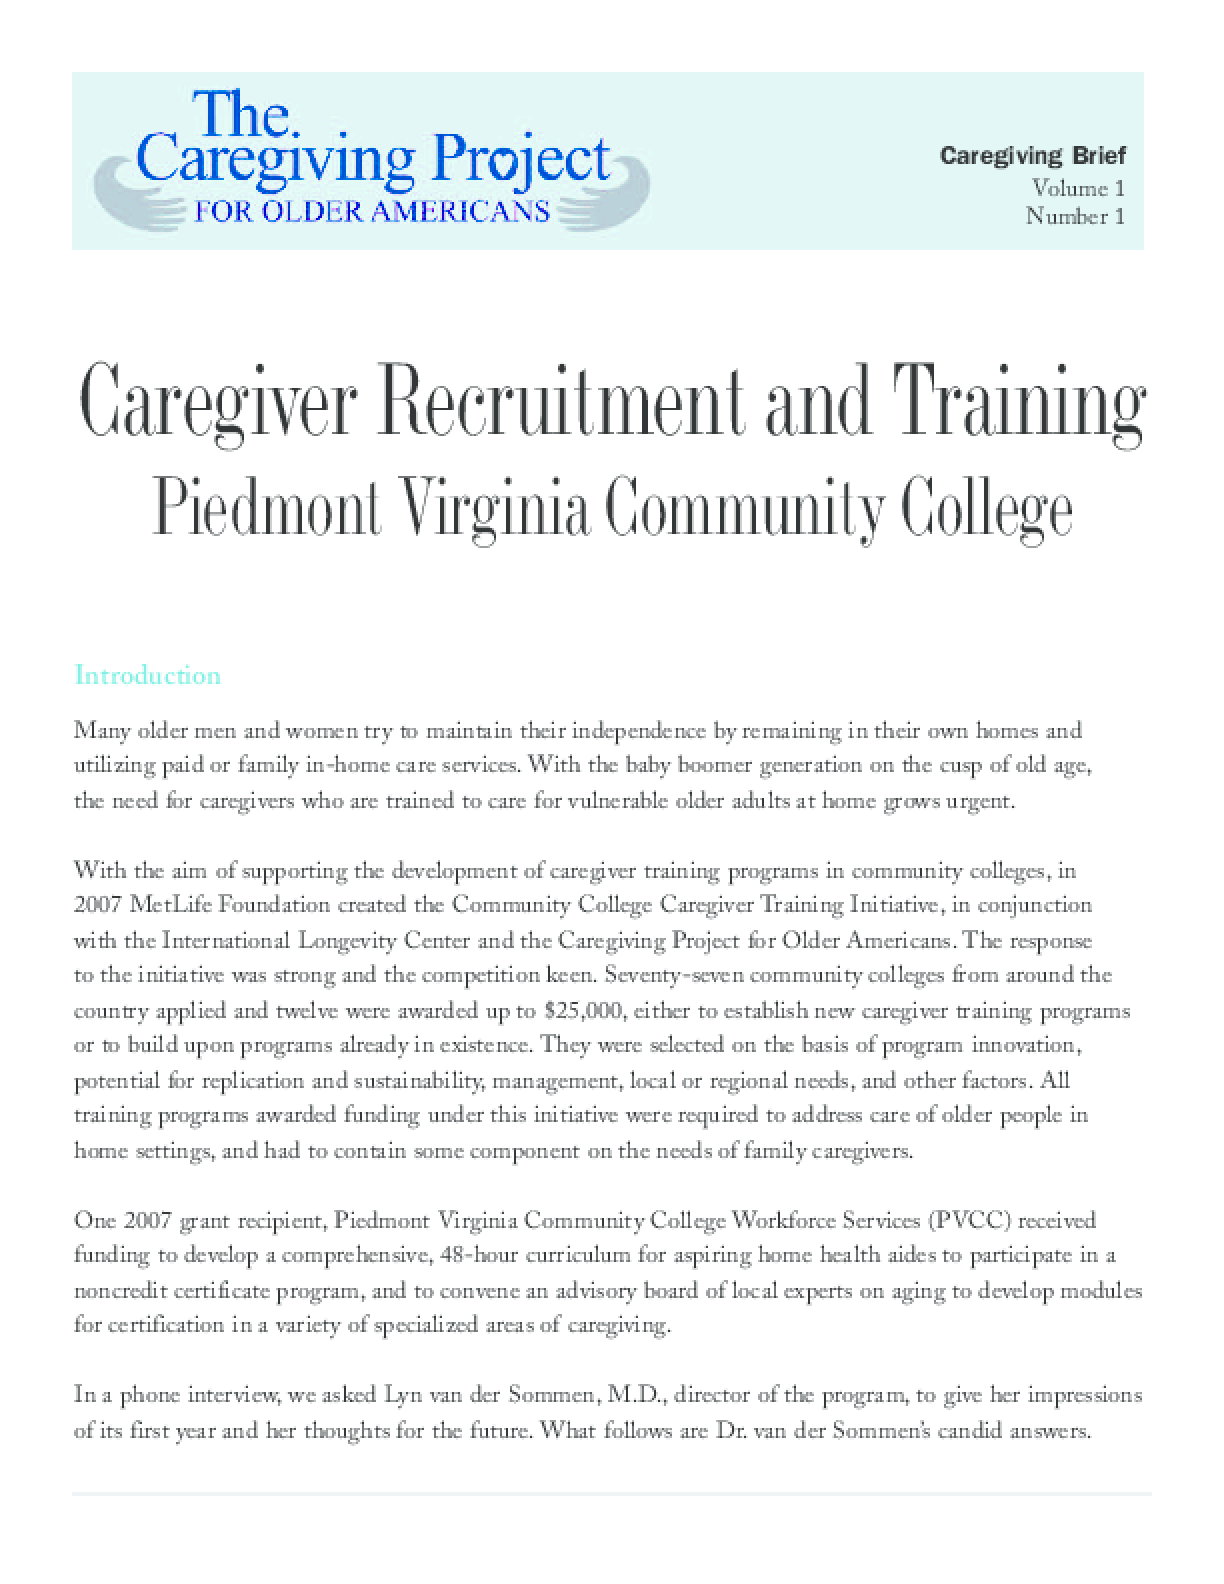 Caregiving Recruitment Training